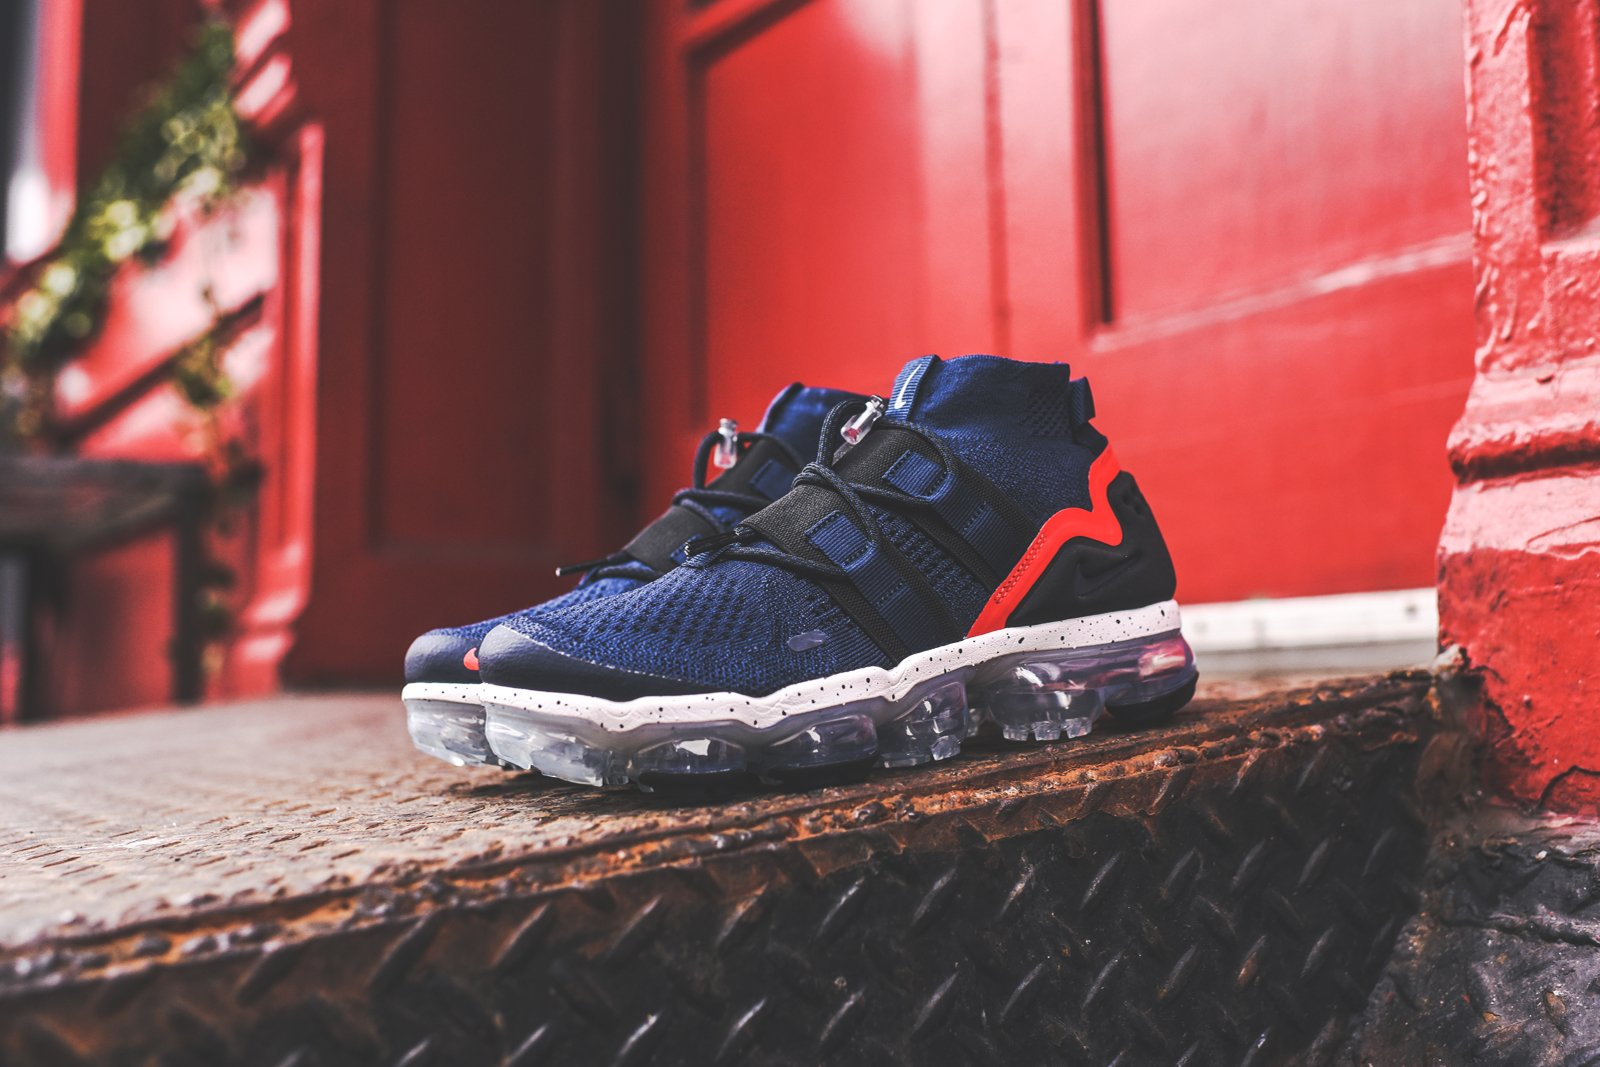 Nike_Air_Vapormax_FK_Utility_Navy_Red_AH6834_406_7453